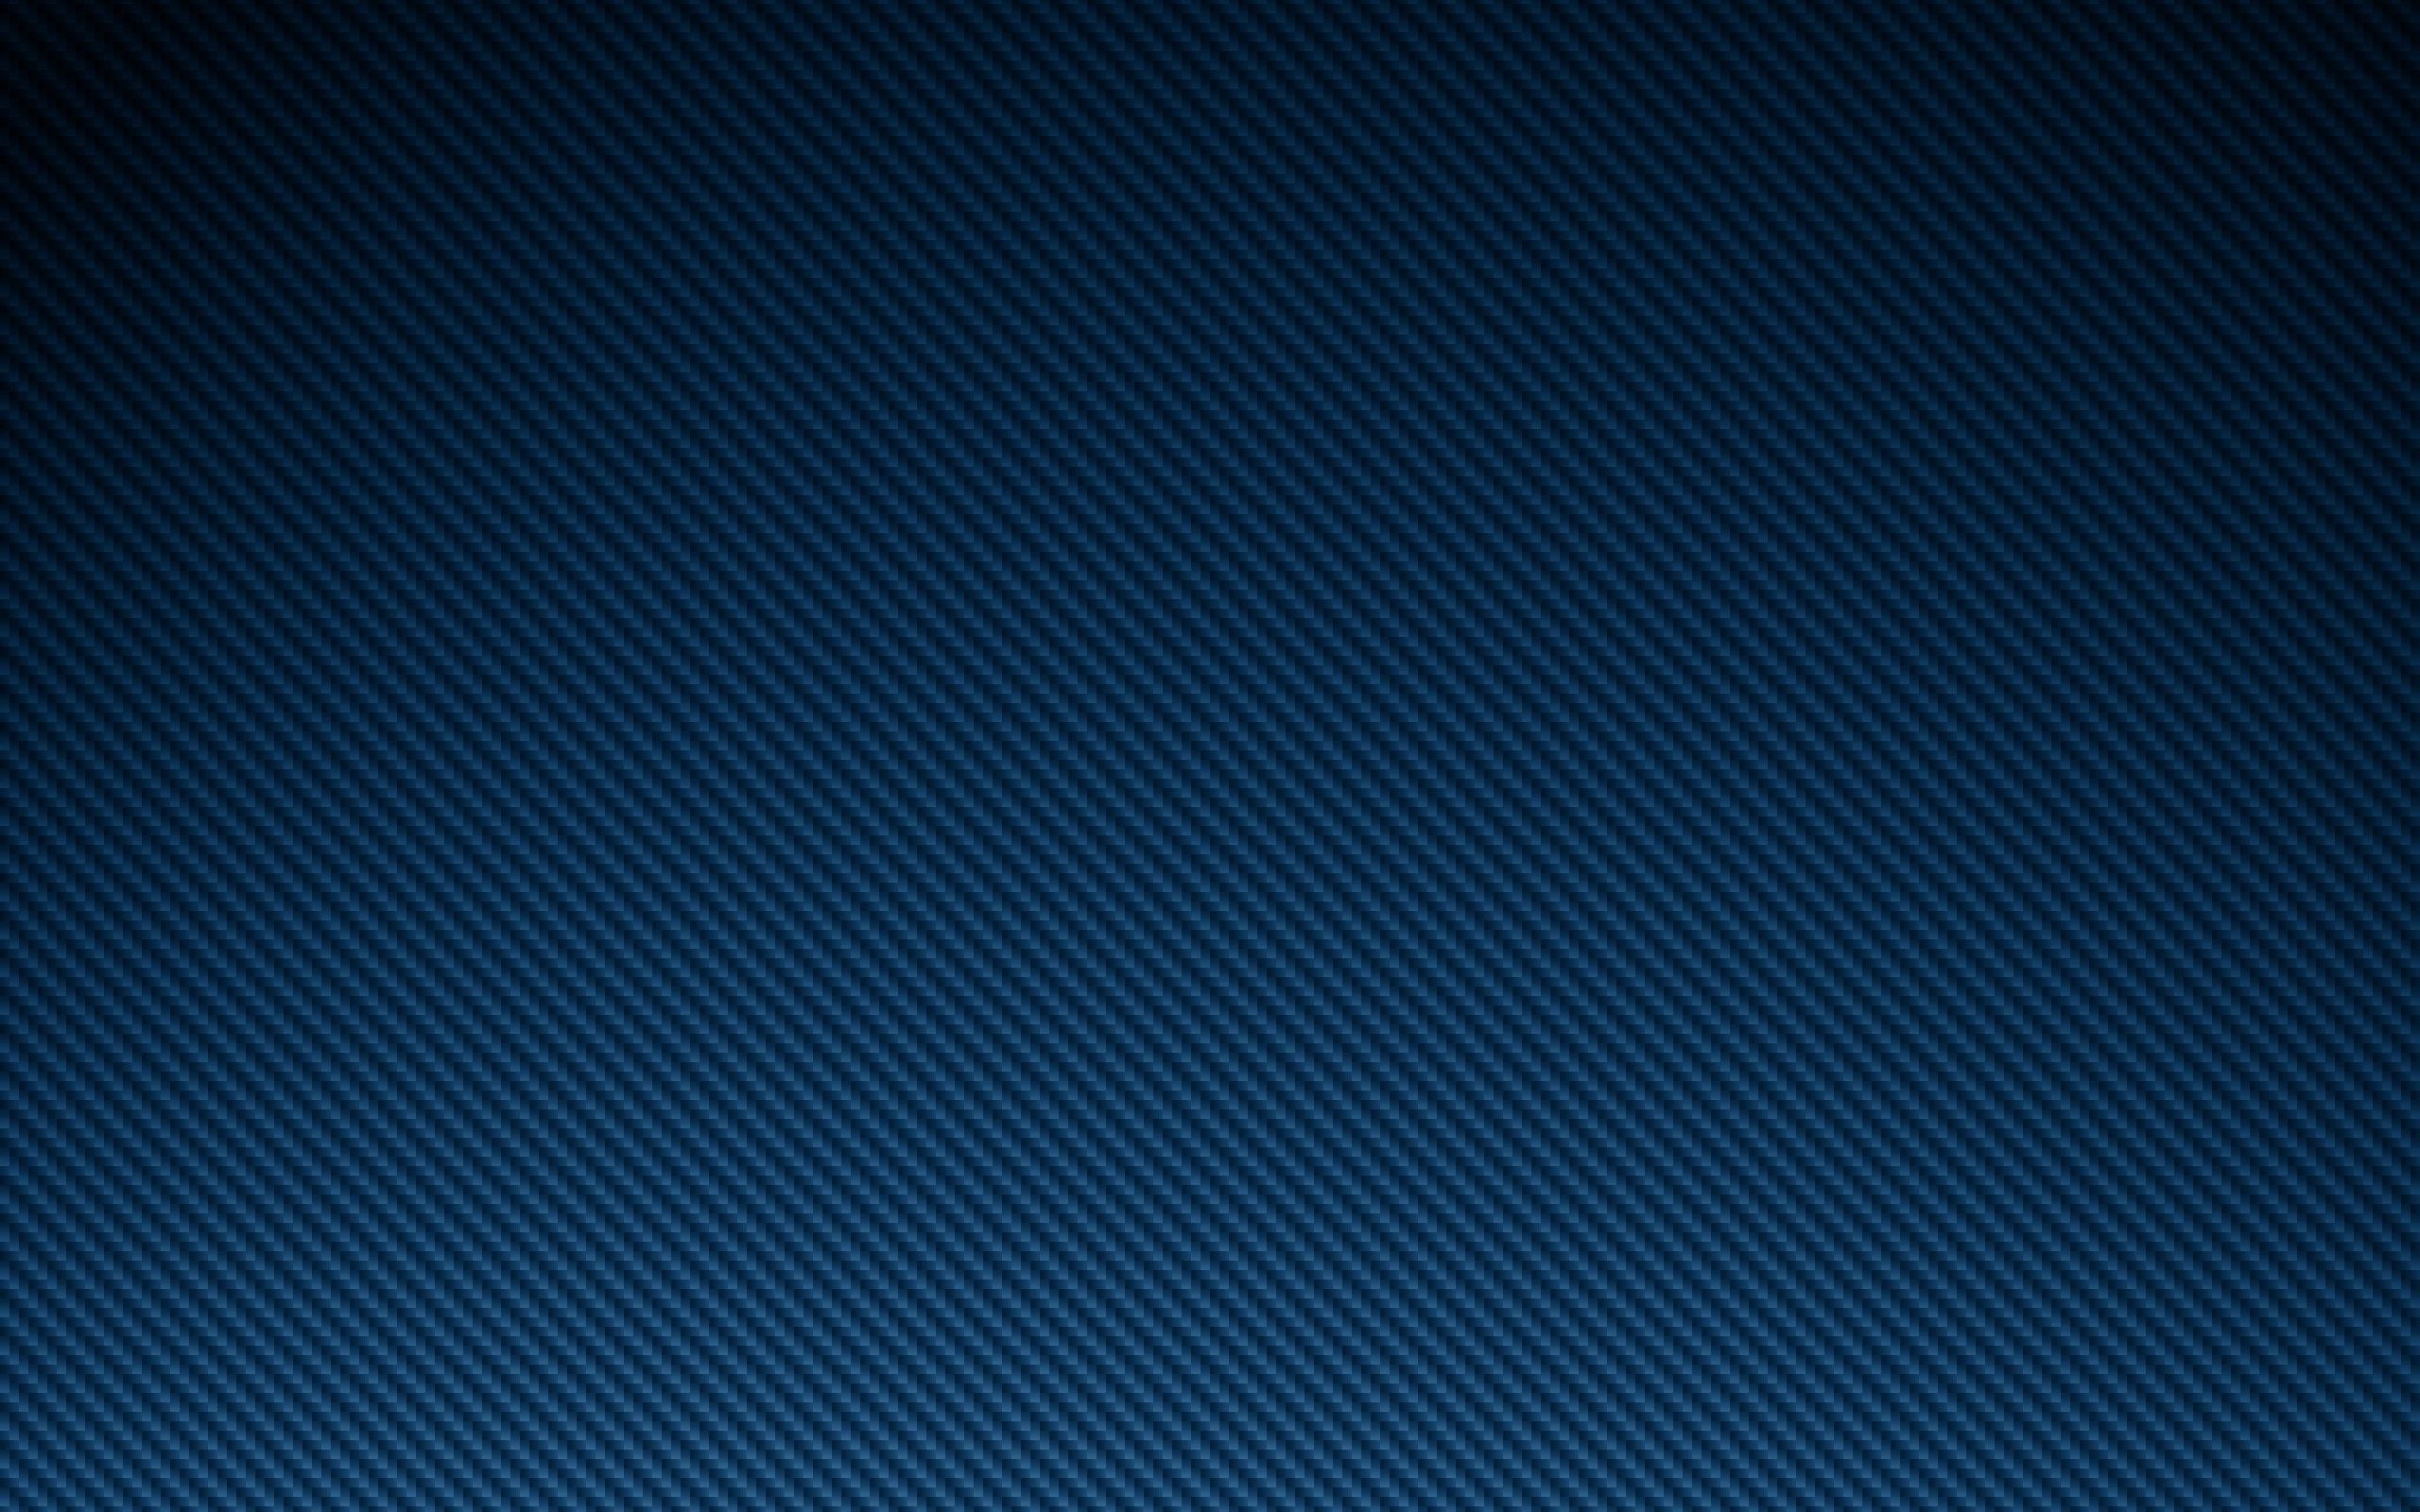 wallpaper art blue carbon fiber pictures hd. | iphone wallpapers